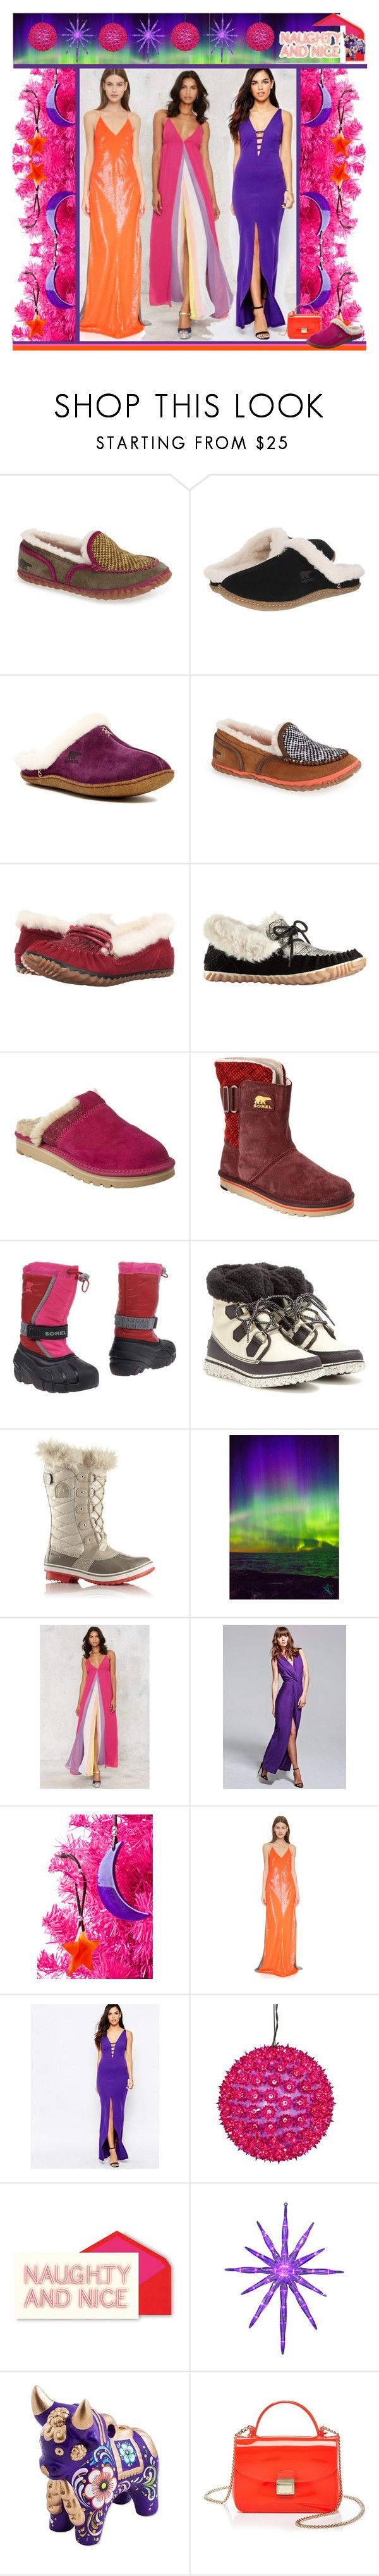 """Tame Winter with SOREL"" by yours-styling-best-friend ❤ liked on Polyvore featuring SOREL, Garcia, Nasty Gal, HotSquash, SoulMakes, KaufmanFranco, Jessica Wright, Kate Spade, NOVICA and Furla"